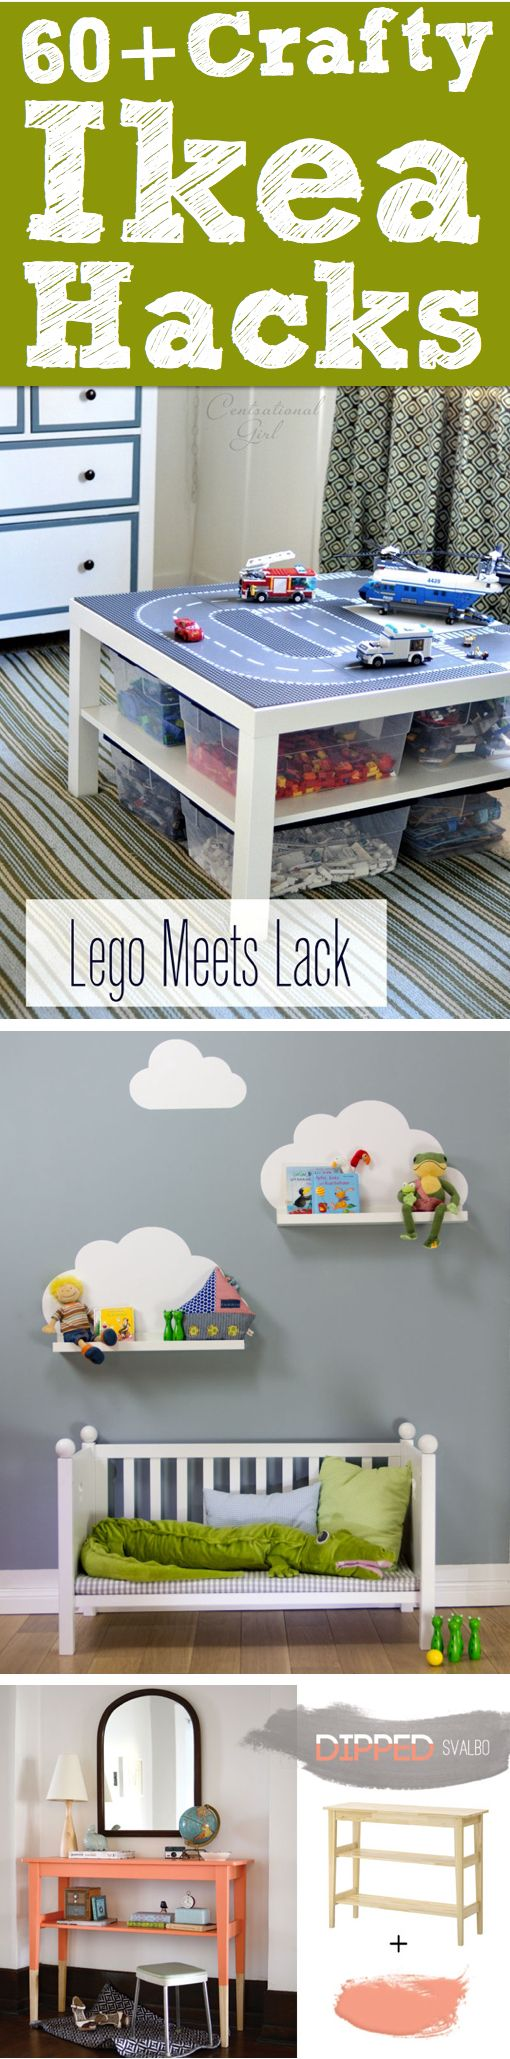 60 crafty ikea hacks to help you save time and money lego tablestorage and the padded storage cubes for playroom are great ideas